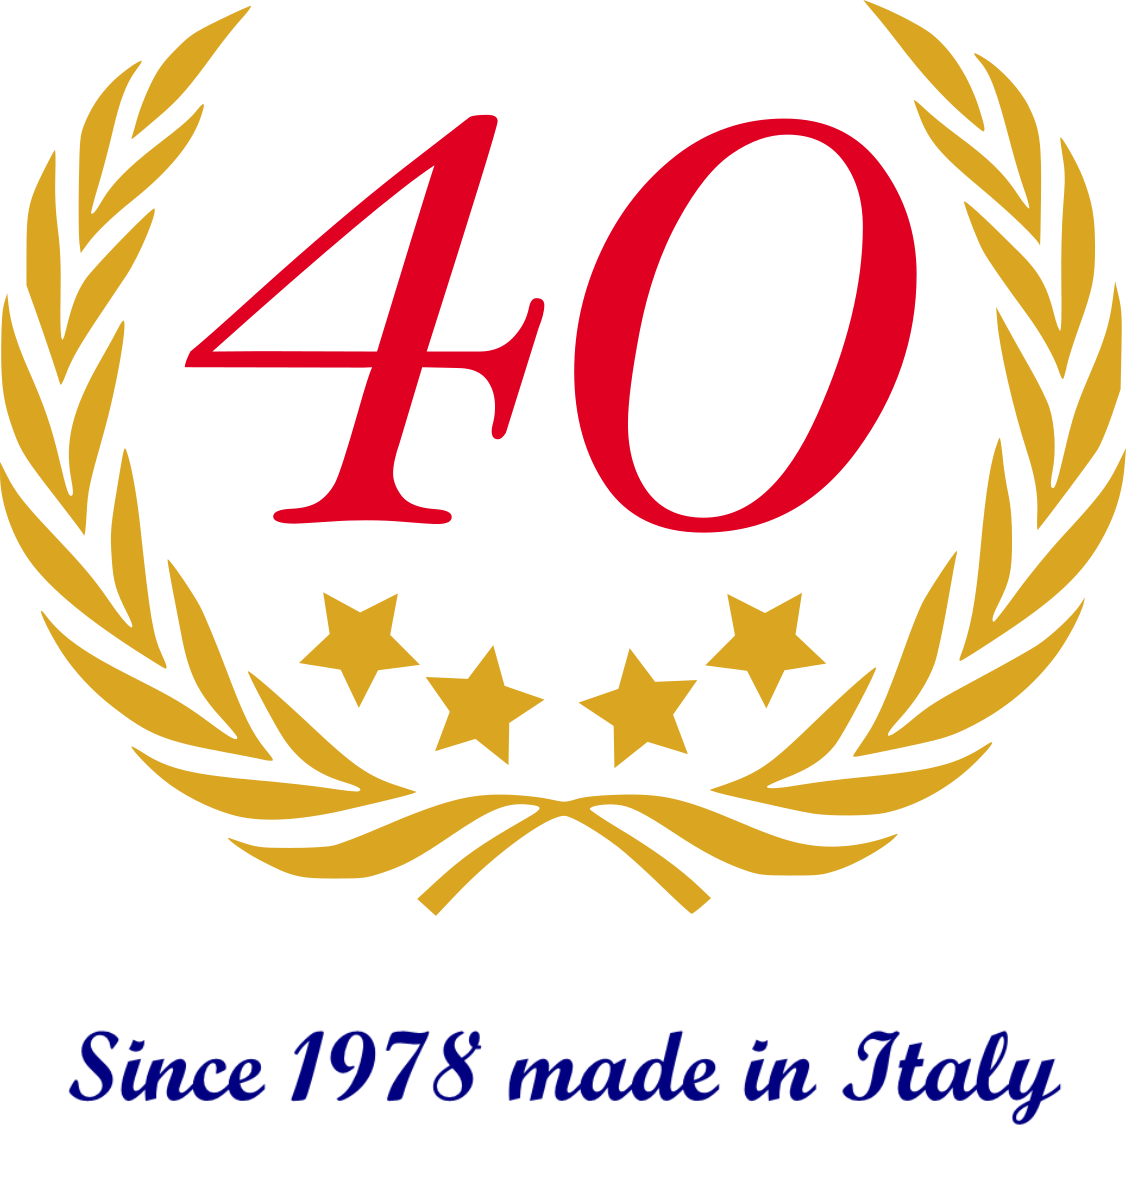 alloro_40years_v5